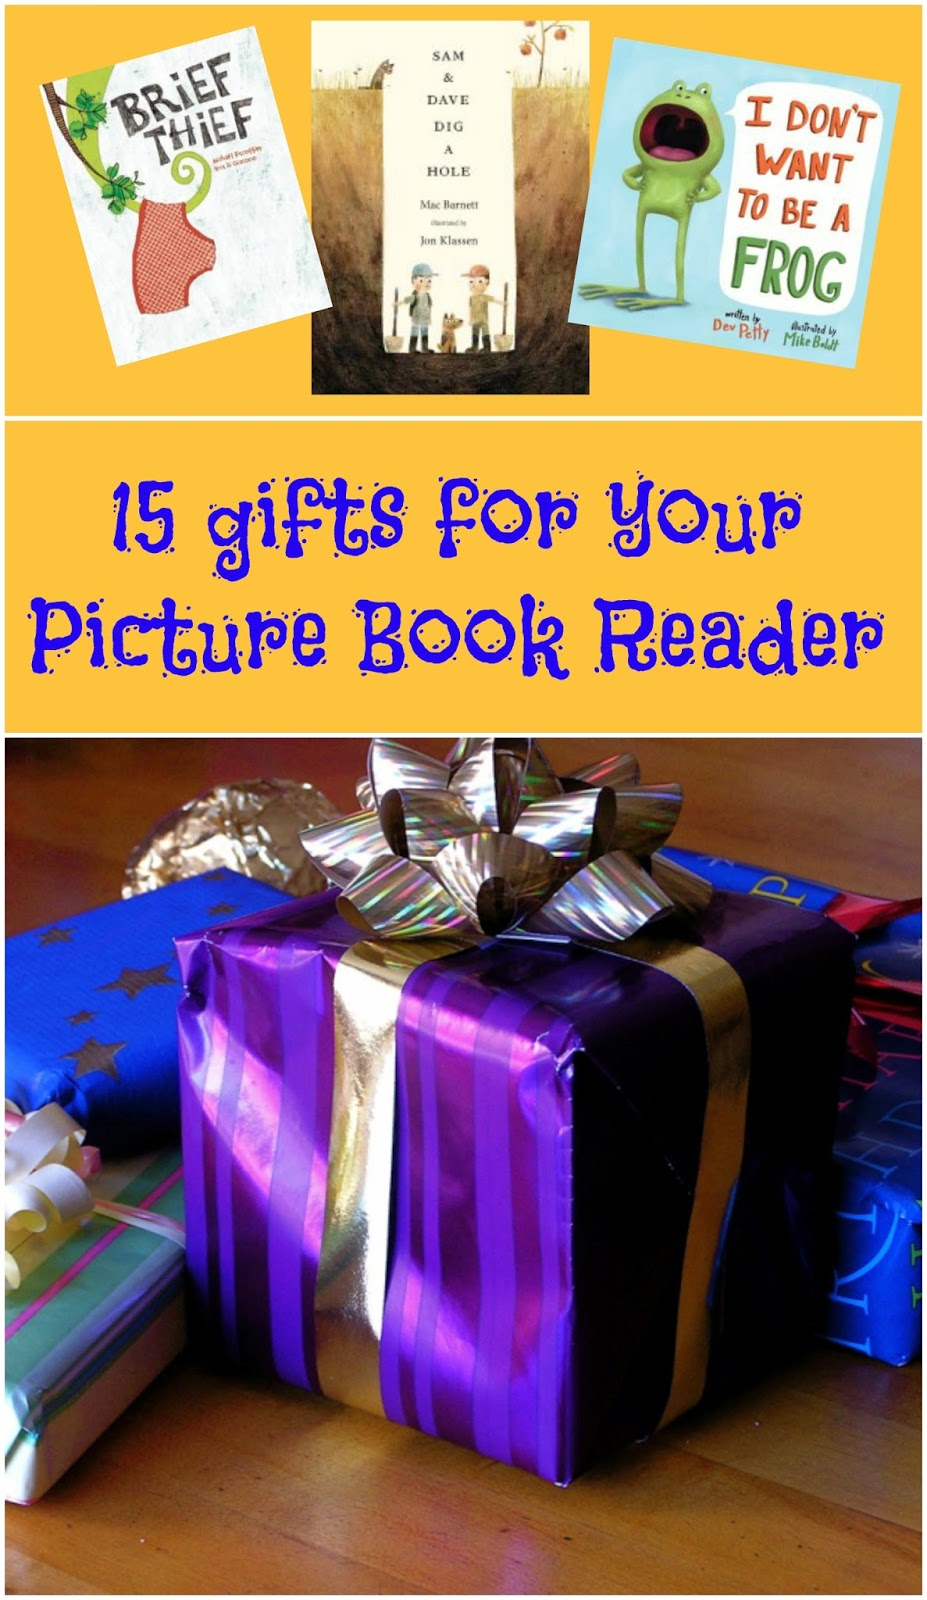 15 Gifts for your Picture Book Reader